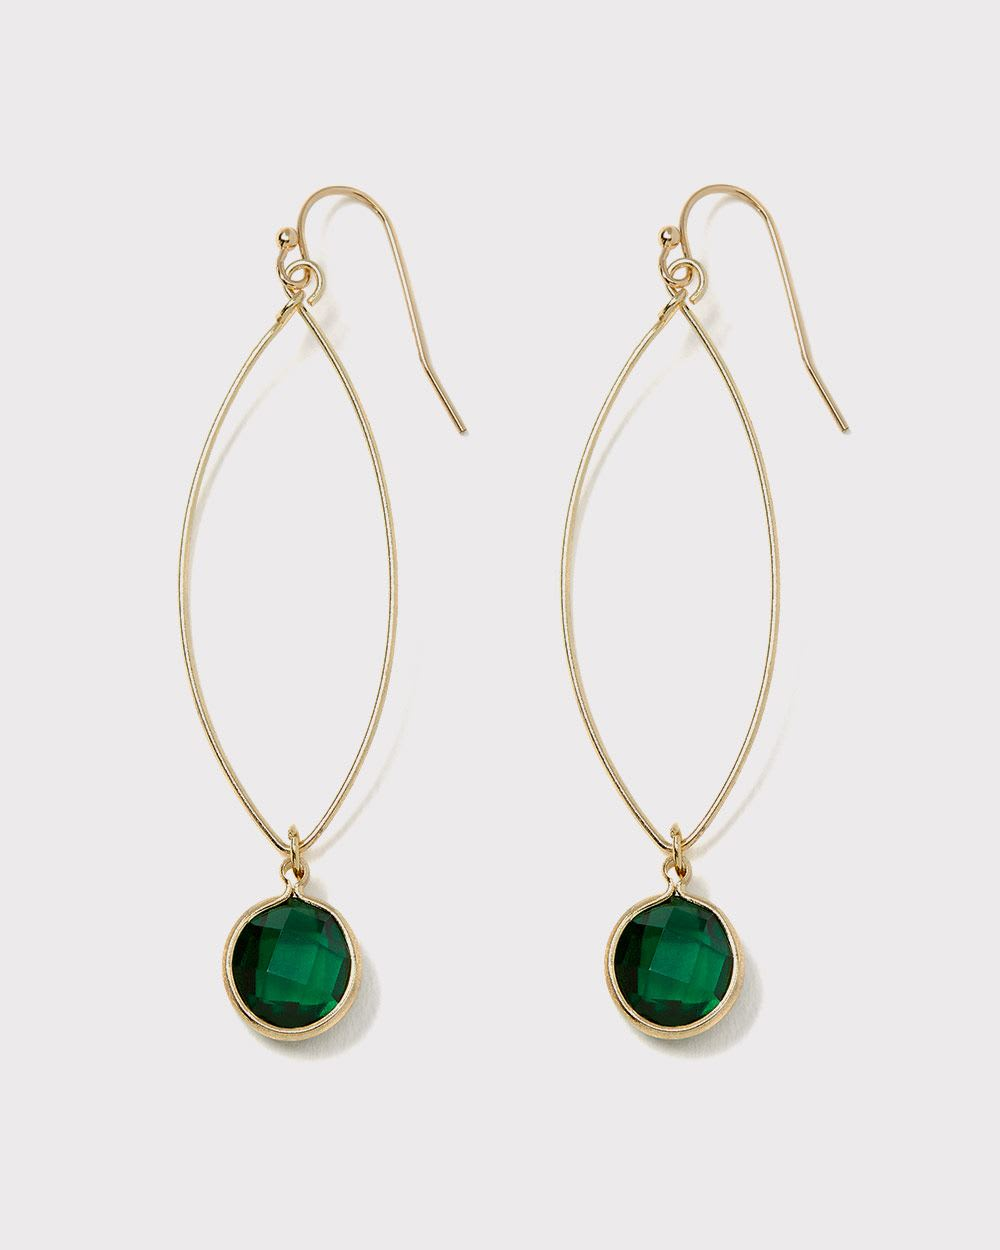 Dainty glass drop earrings